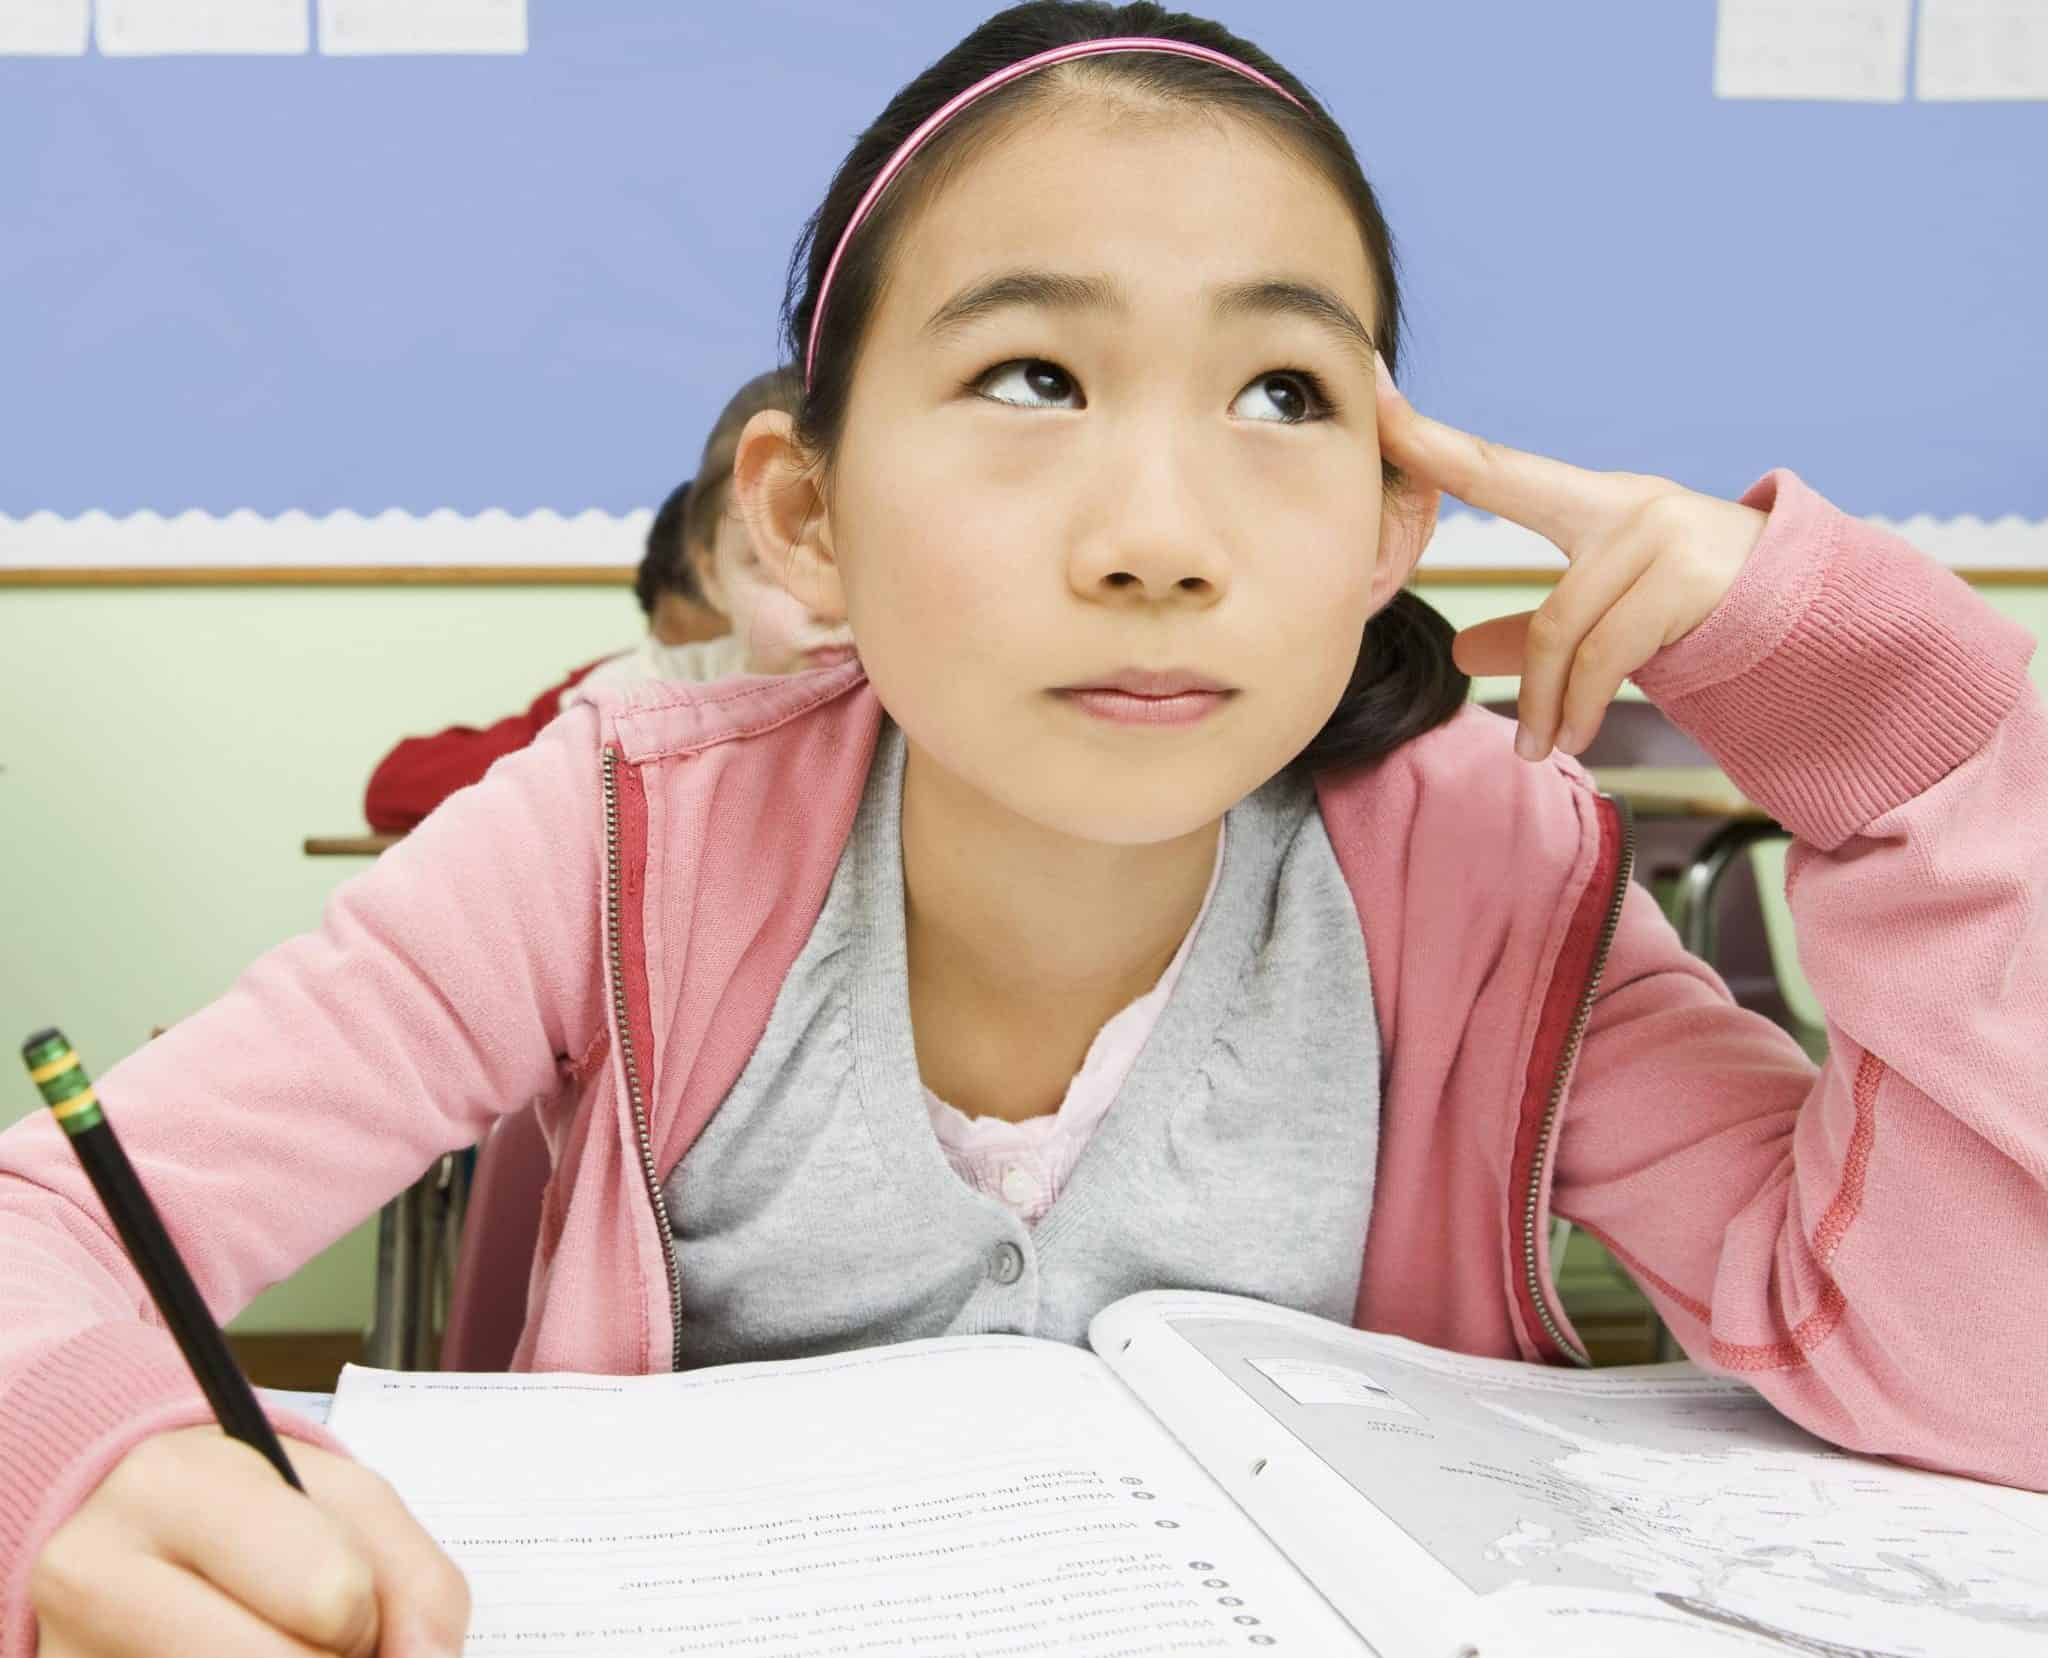 Teaching Students With Autism Spectrum Disorder: Tips